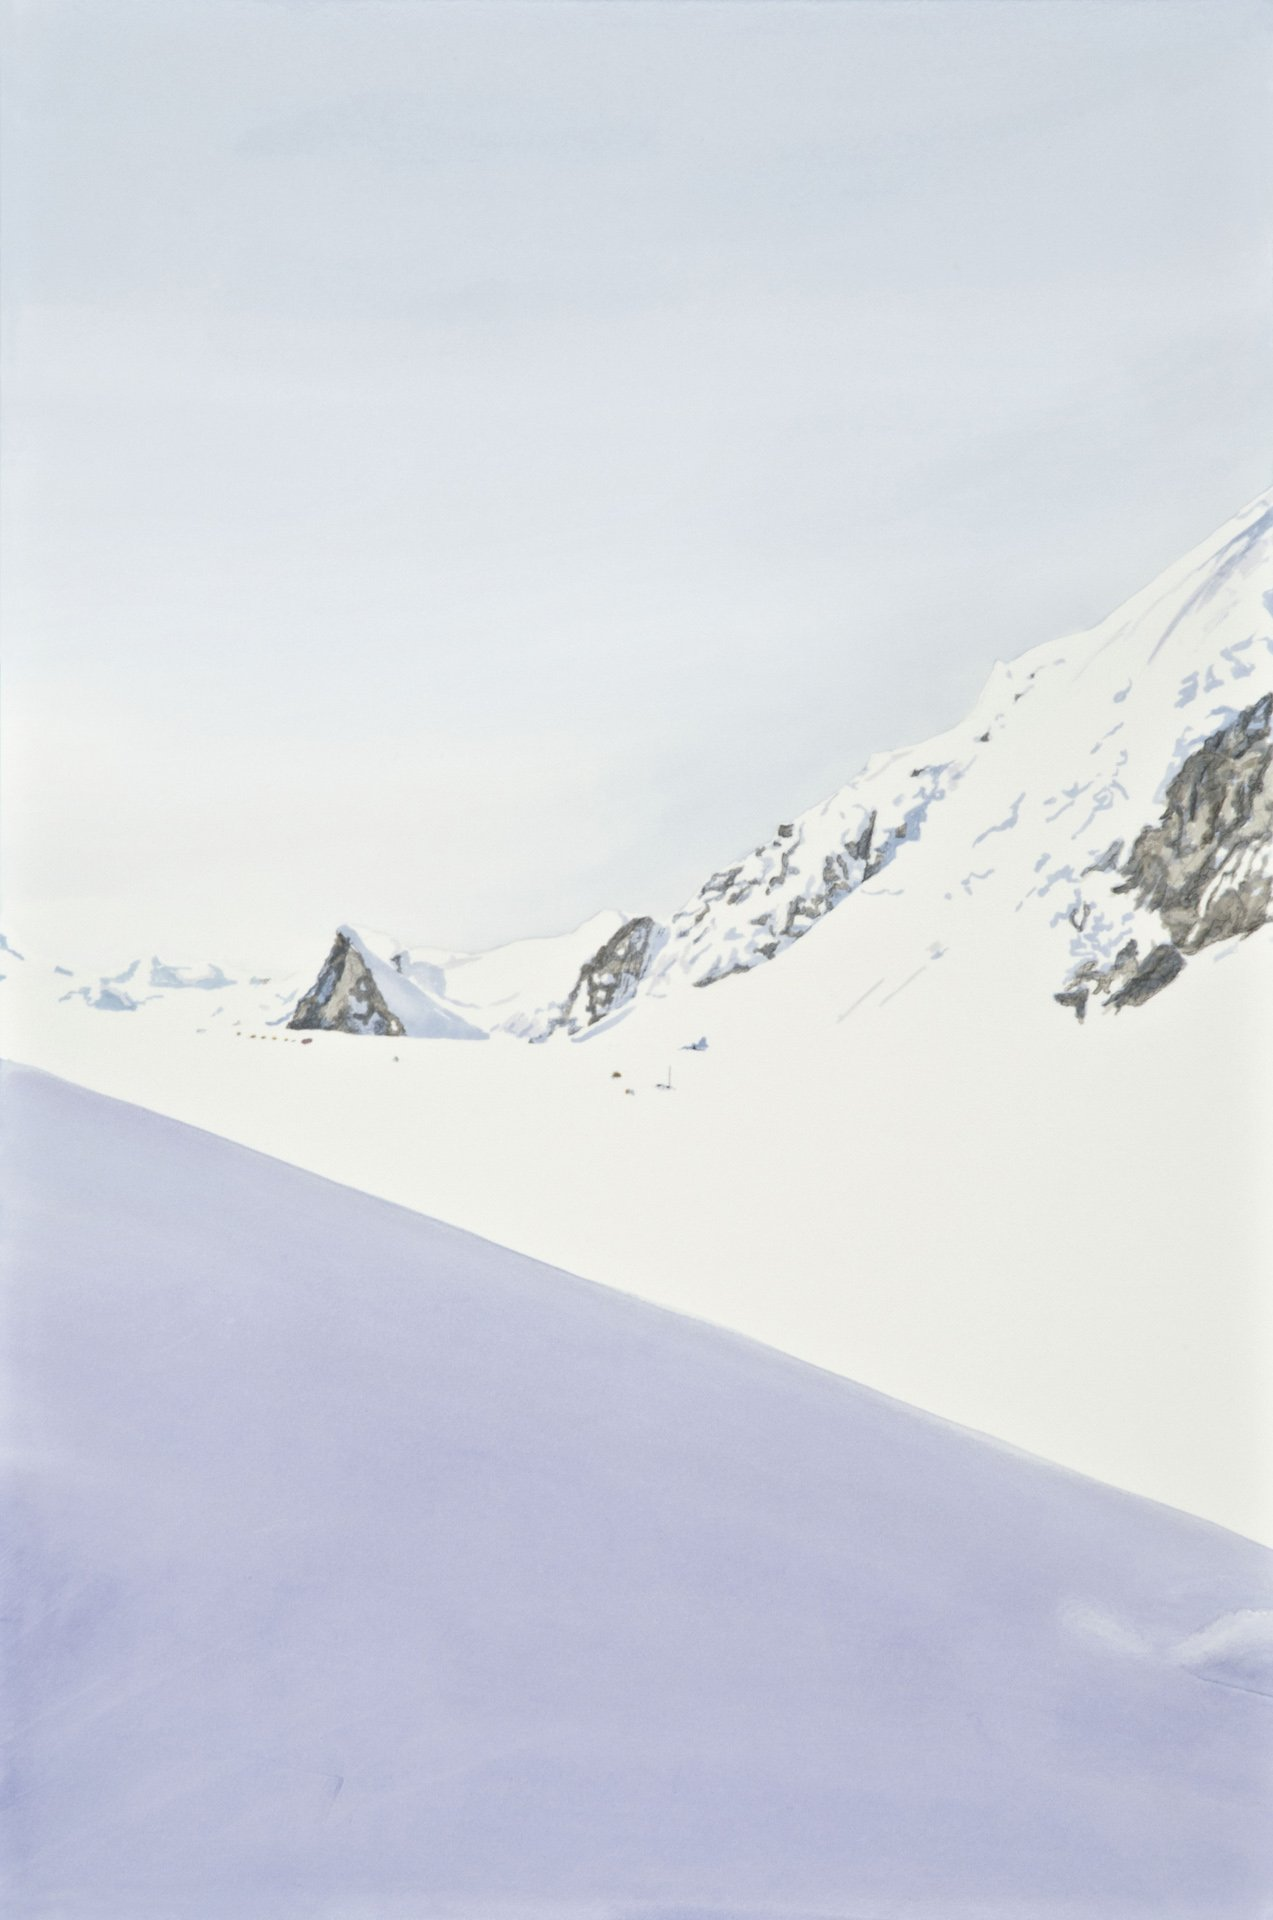 "Rising to the Col; Graphite, acrylic ink on paper, mounted on panel; 30""x 20"", 2011"